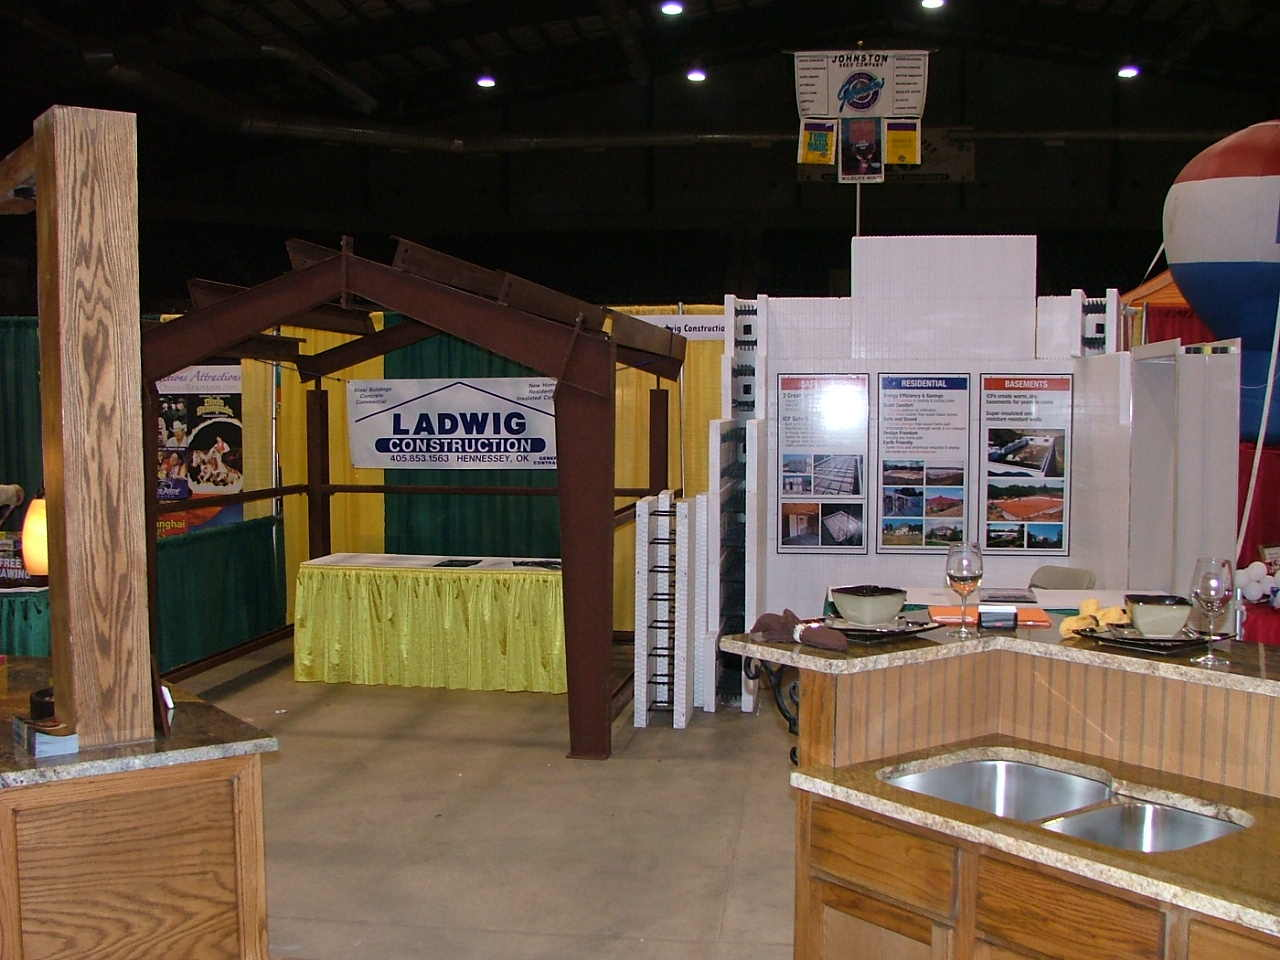 Trade Show Booth - Show Off Yours!-lee5-003001.jpg